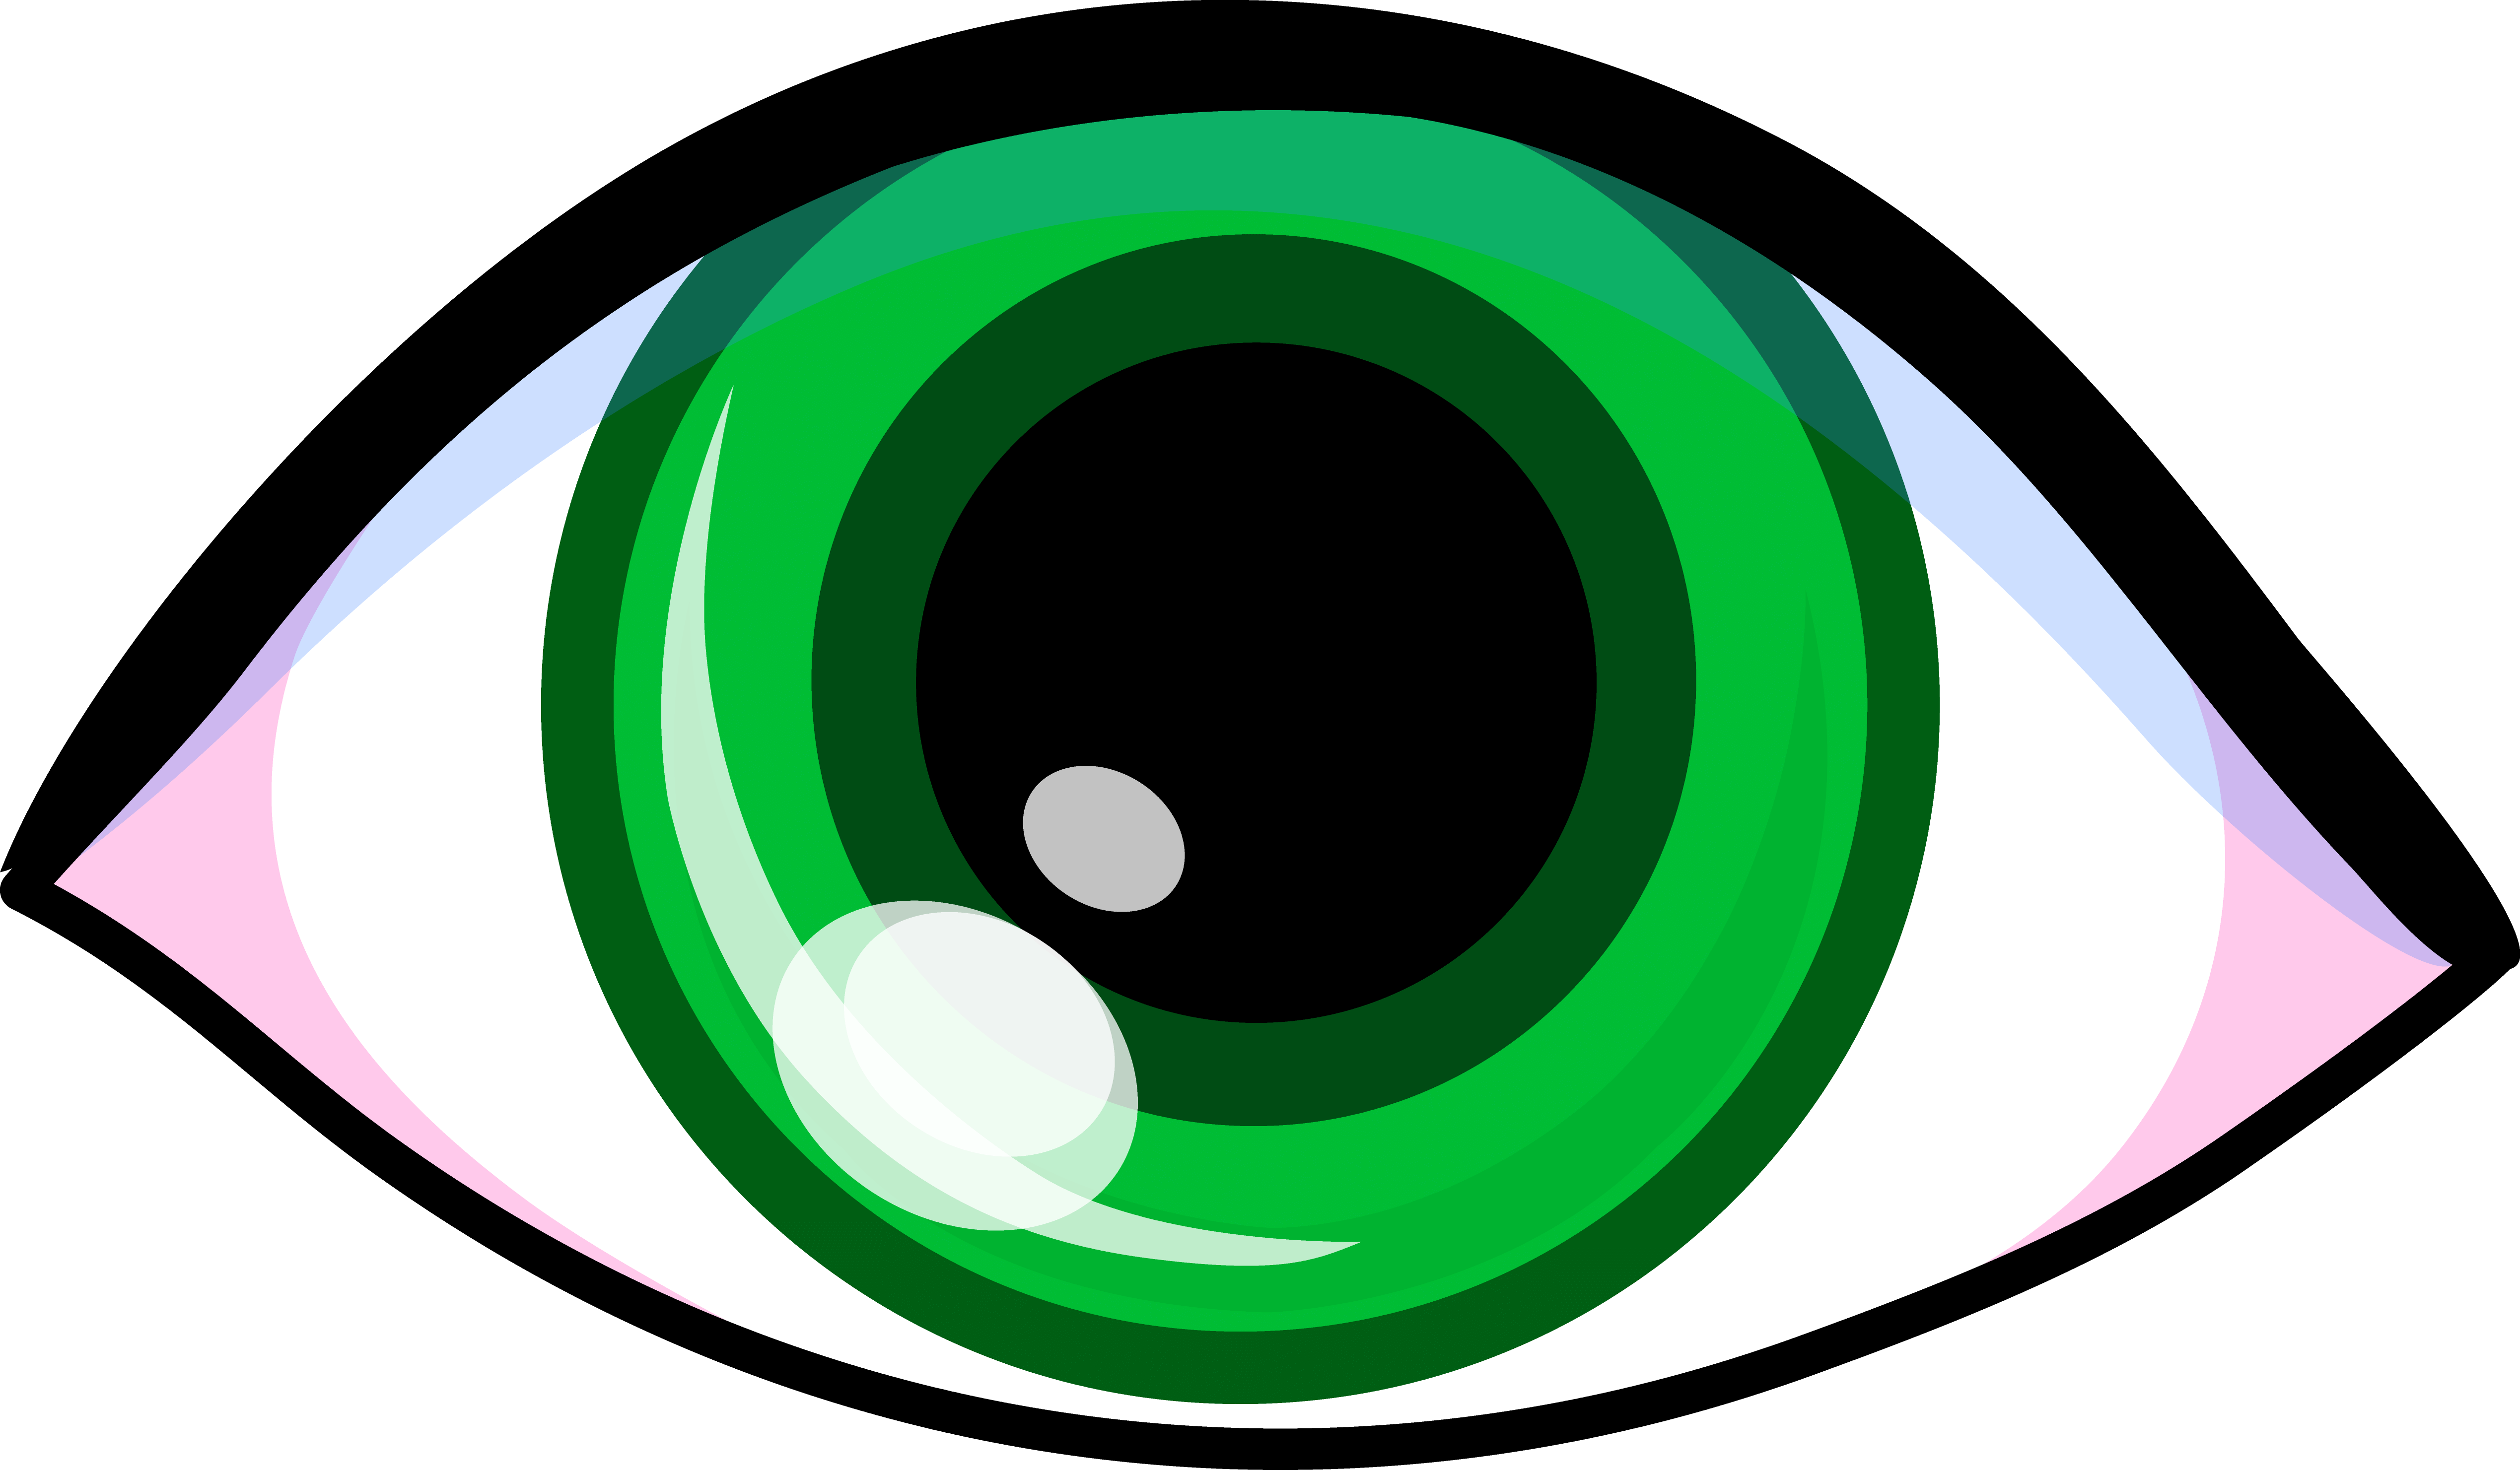 Free eyes cliparts download. Eyeball clipart green eye